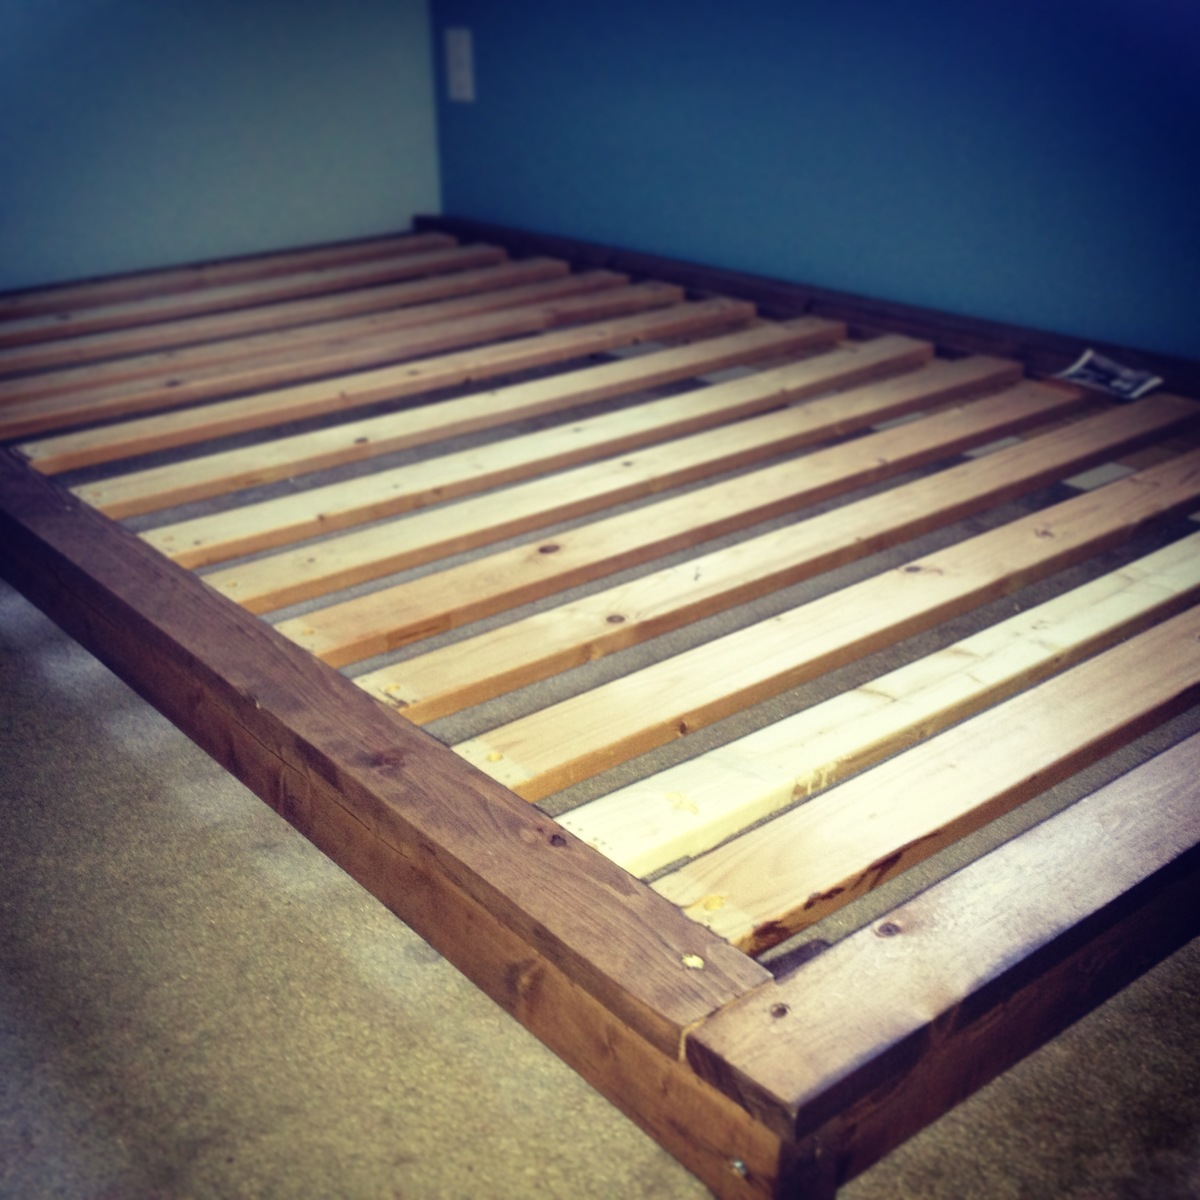 Ana White | Platform bed for my toddler - DIY Projects